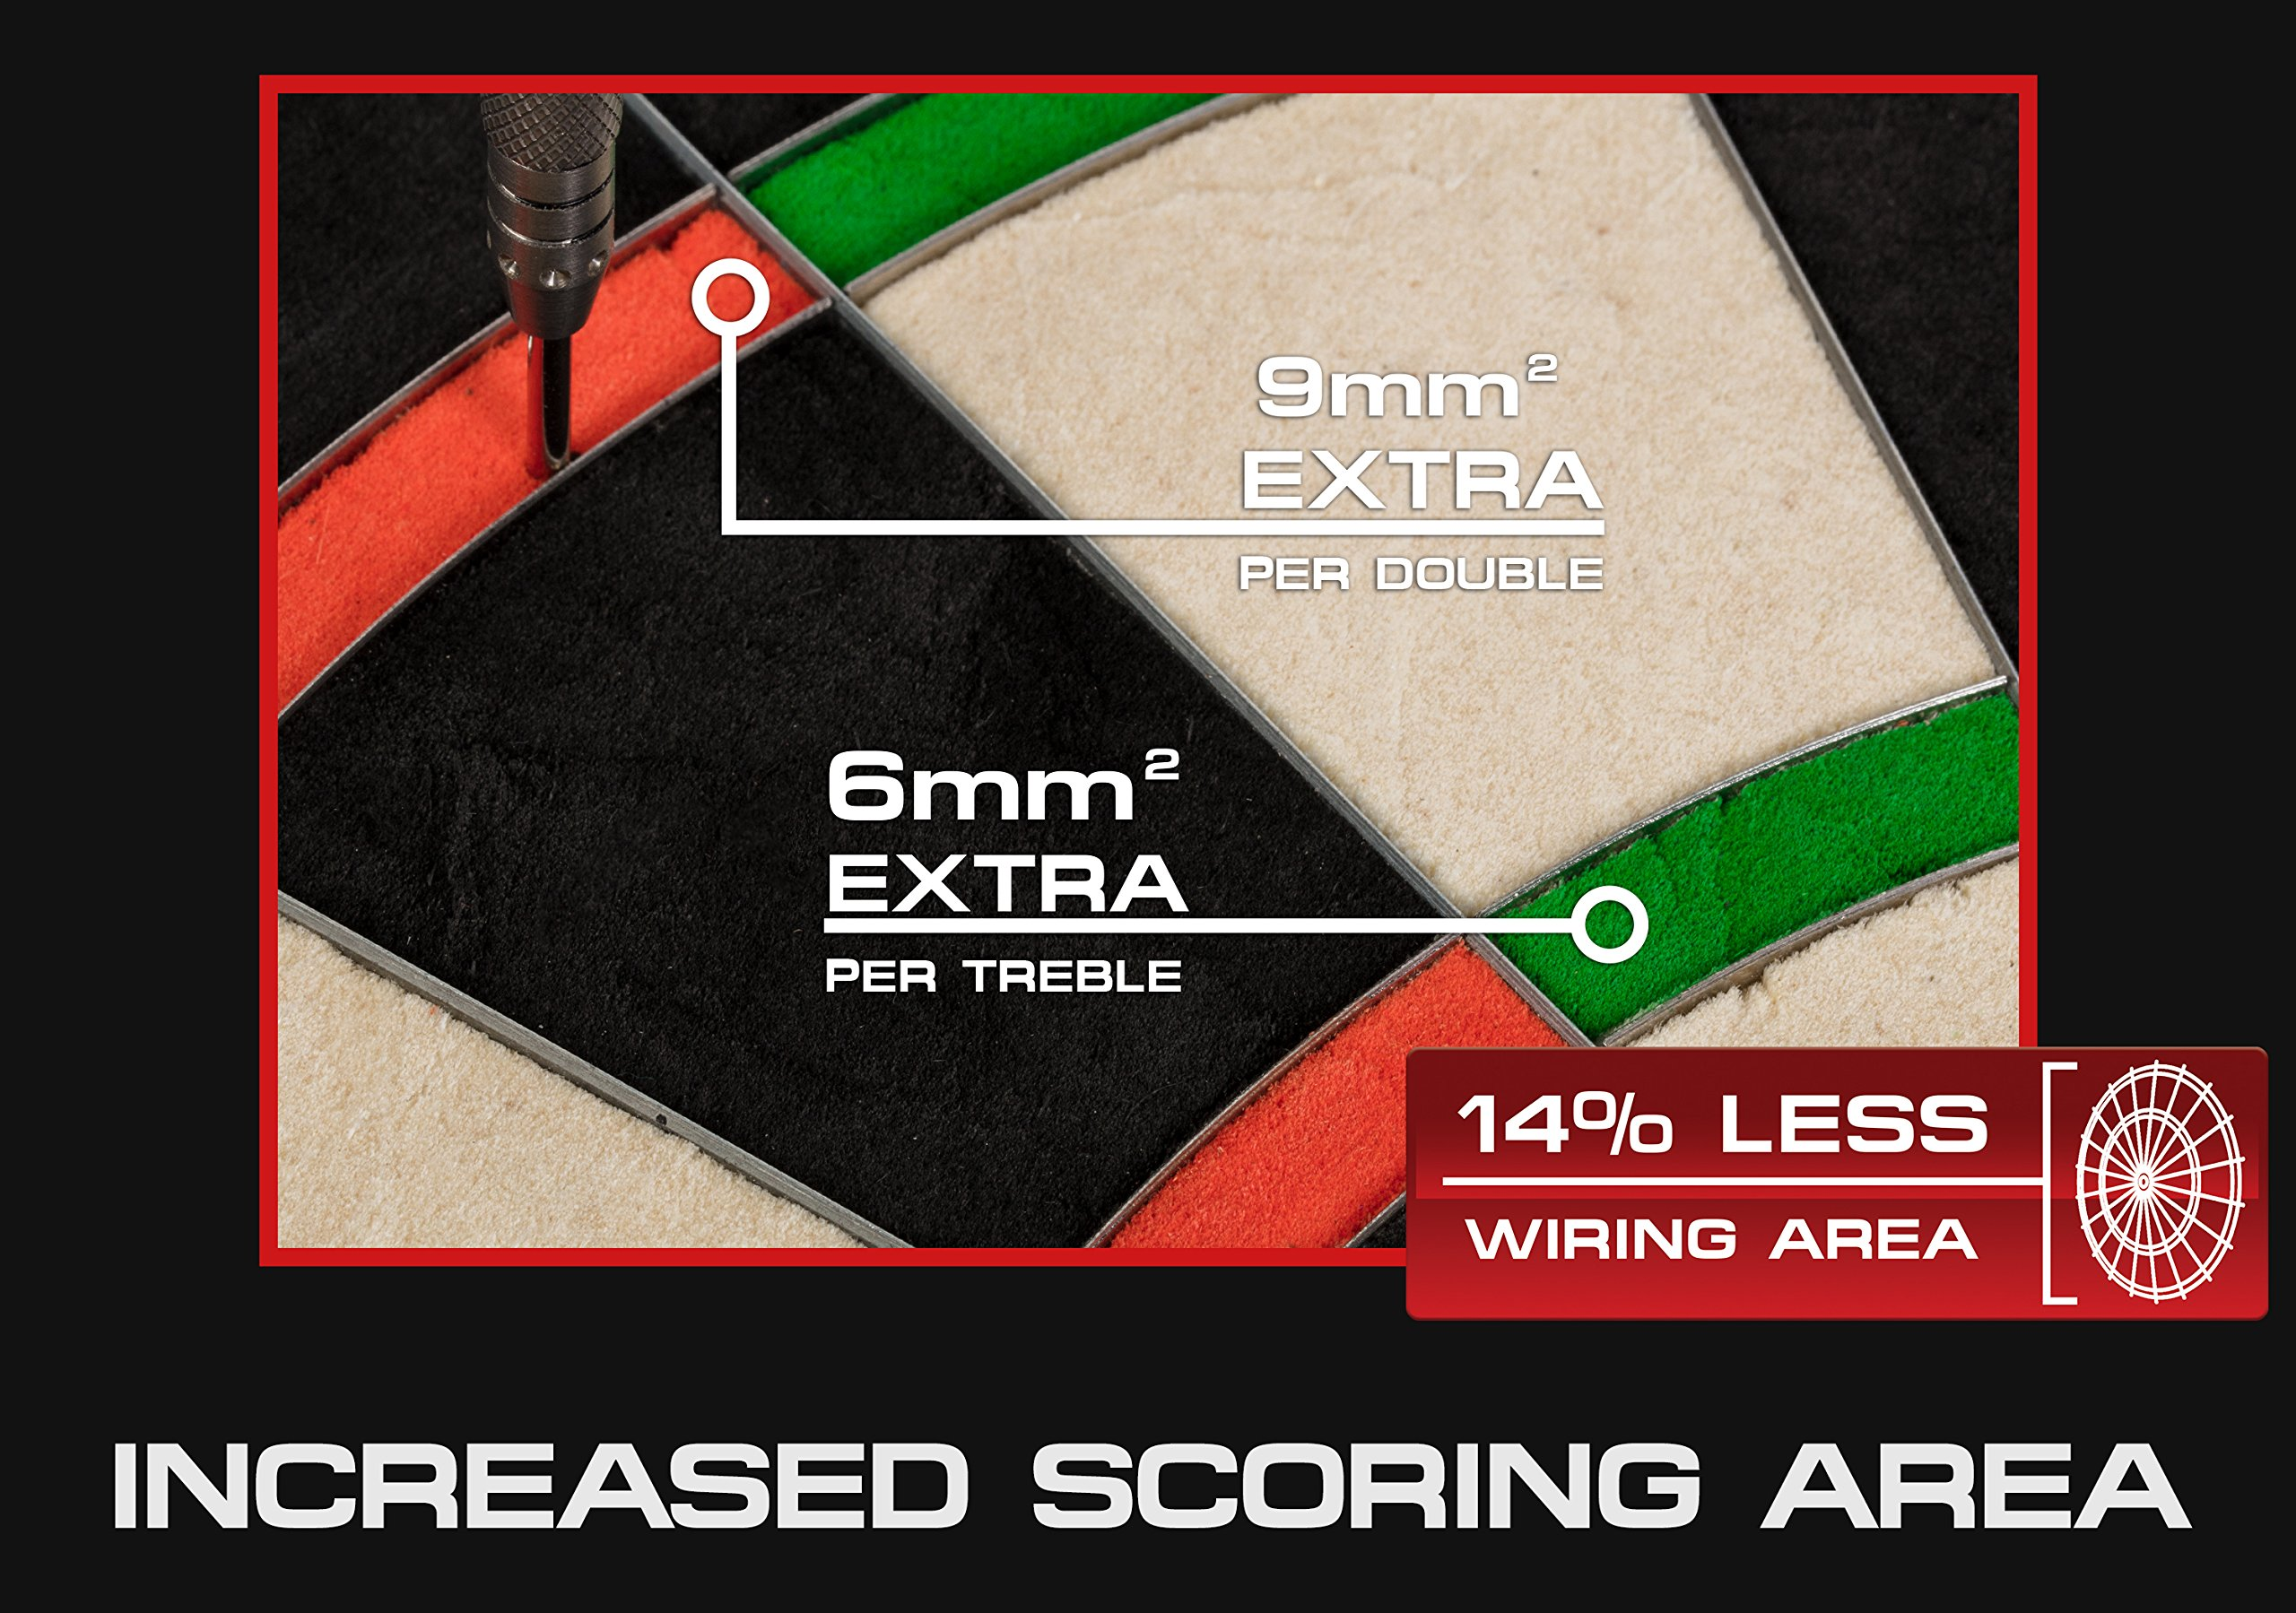 winmau blade 5 dual core increased scoring area